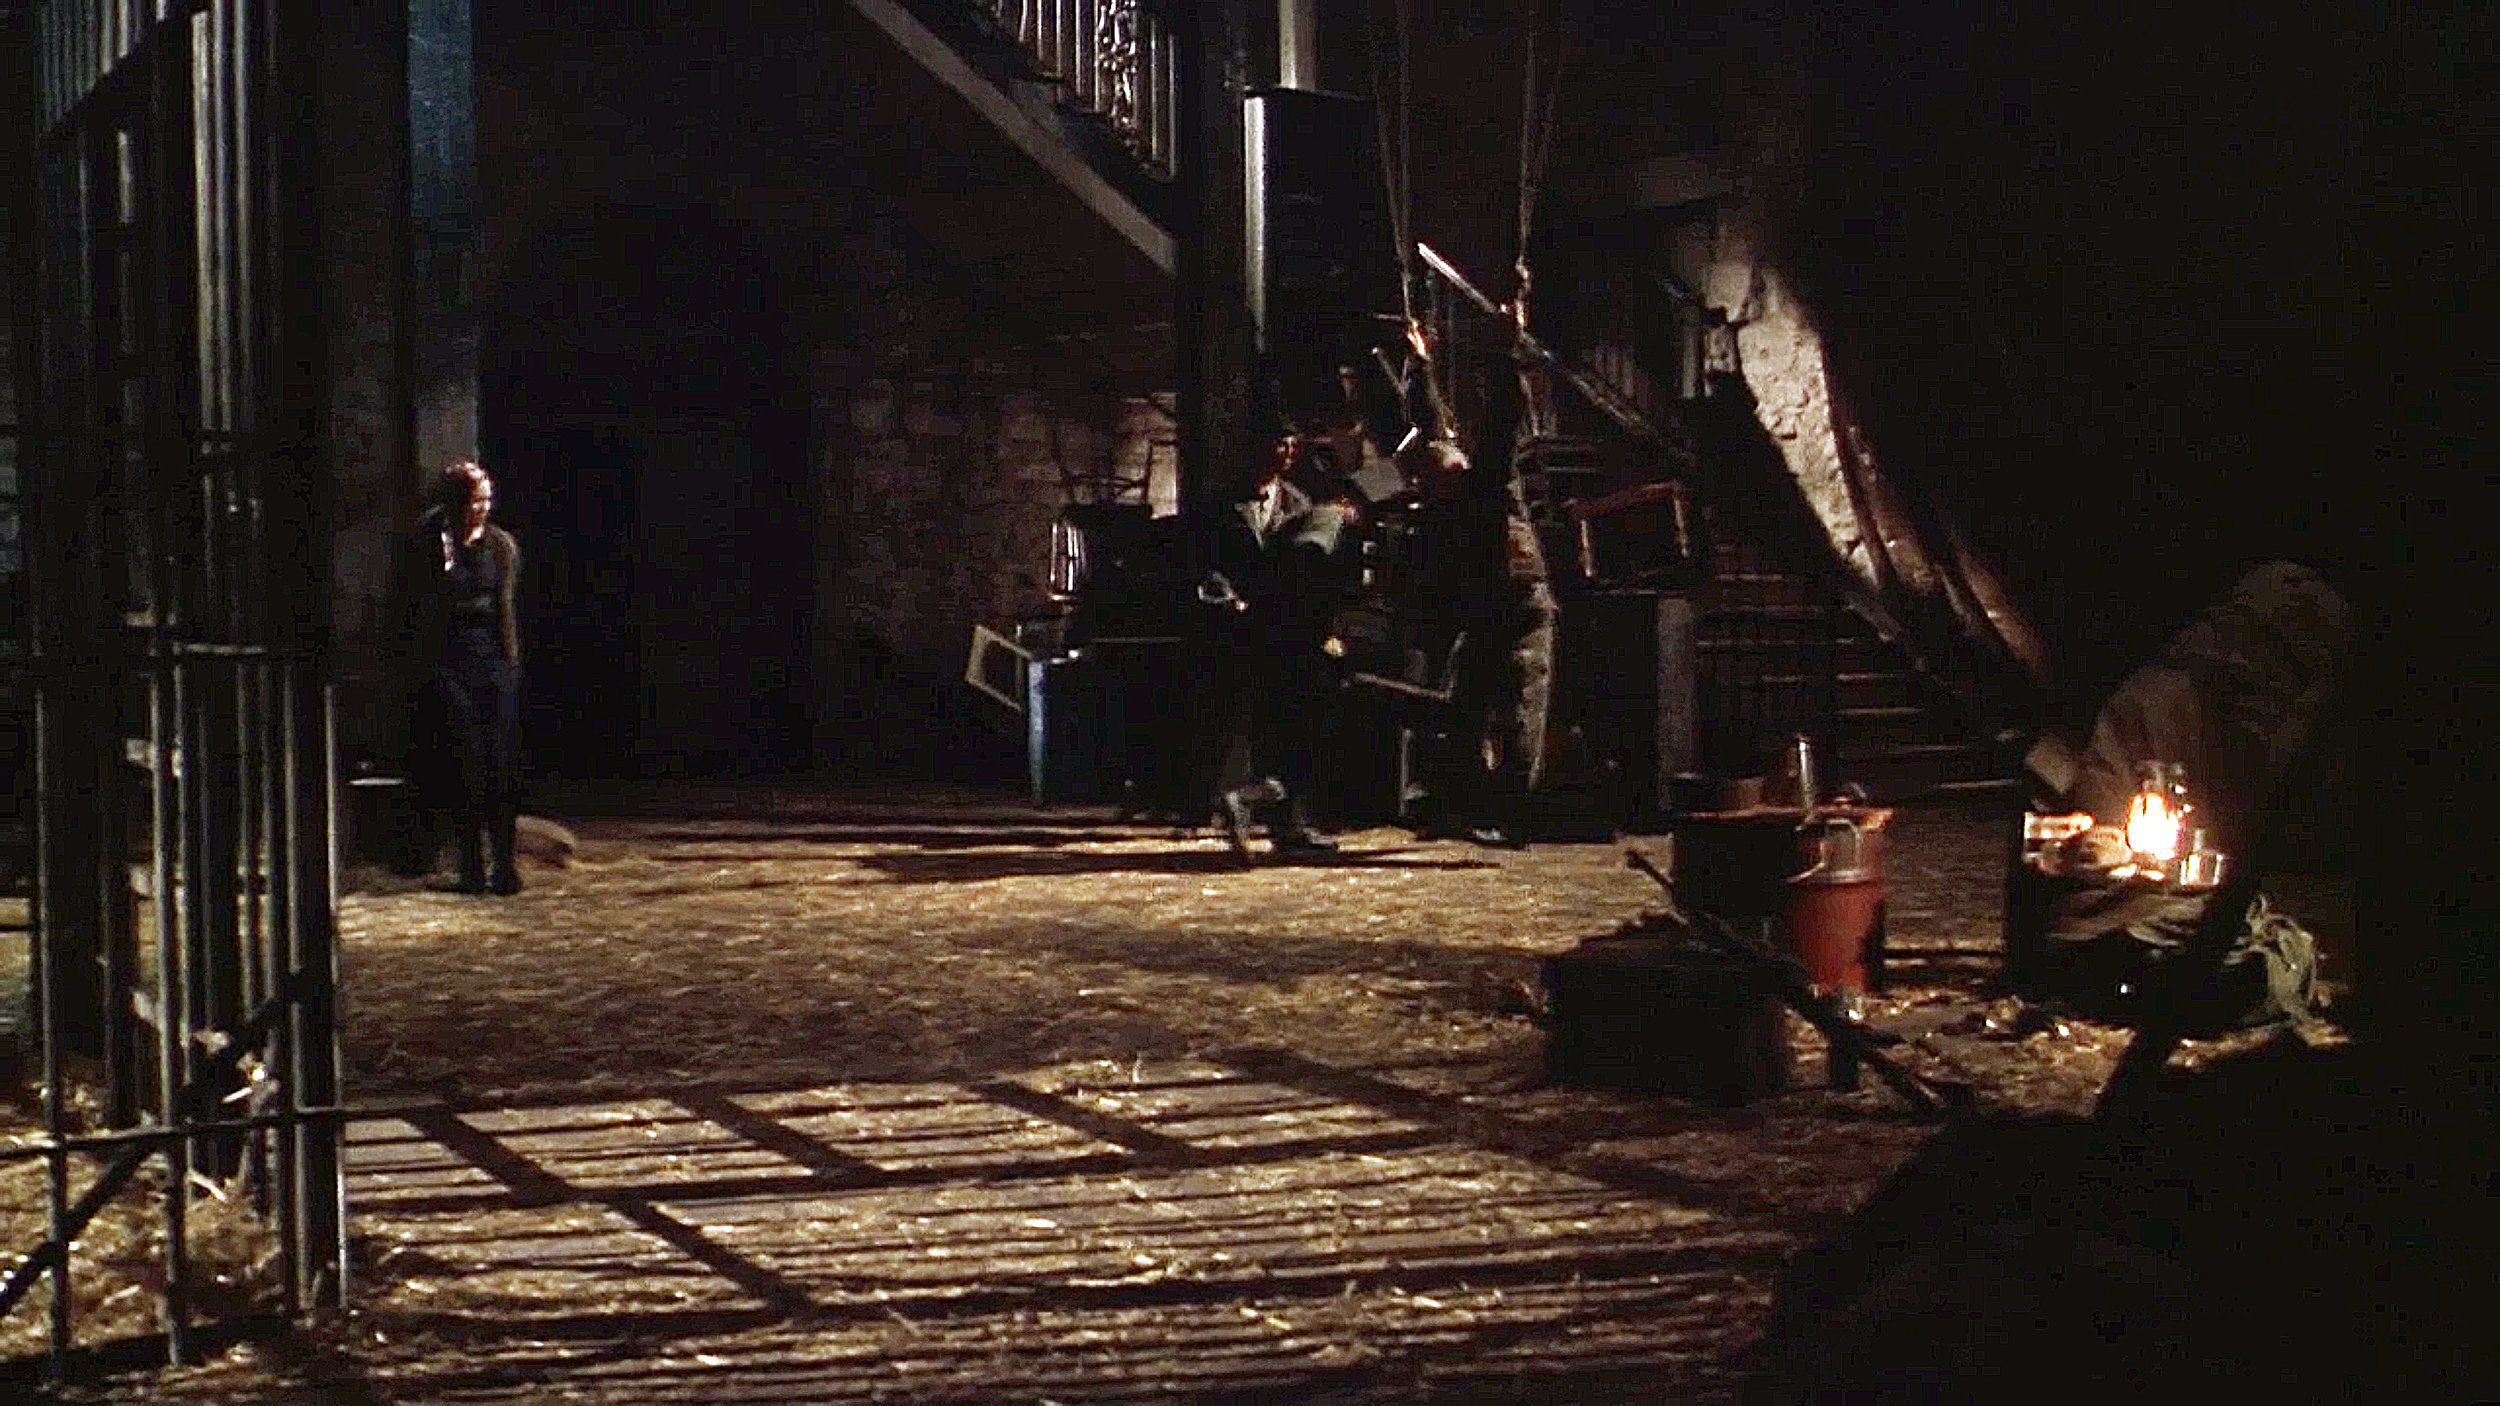 The Sustitute 3 was a low-budget shoot-em up. This is an abondoned mill with a Serbian militia camp and prison in it.